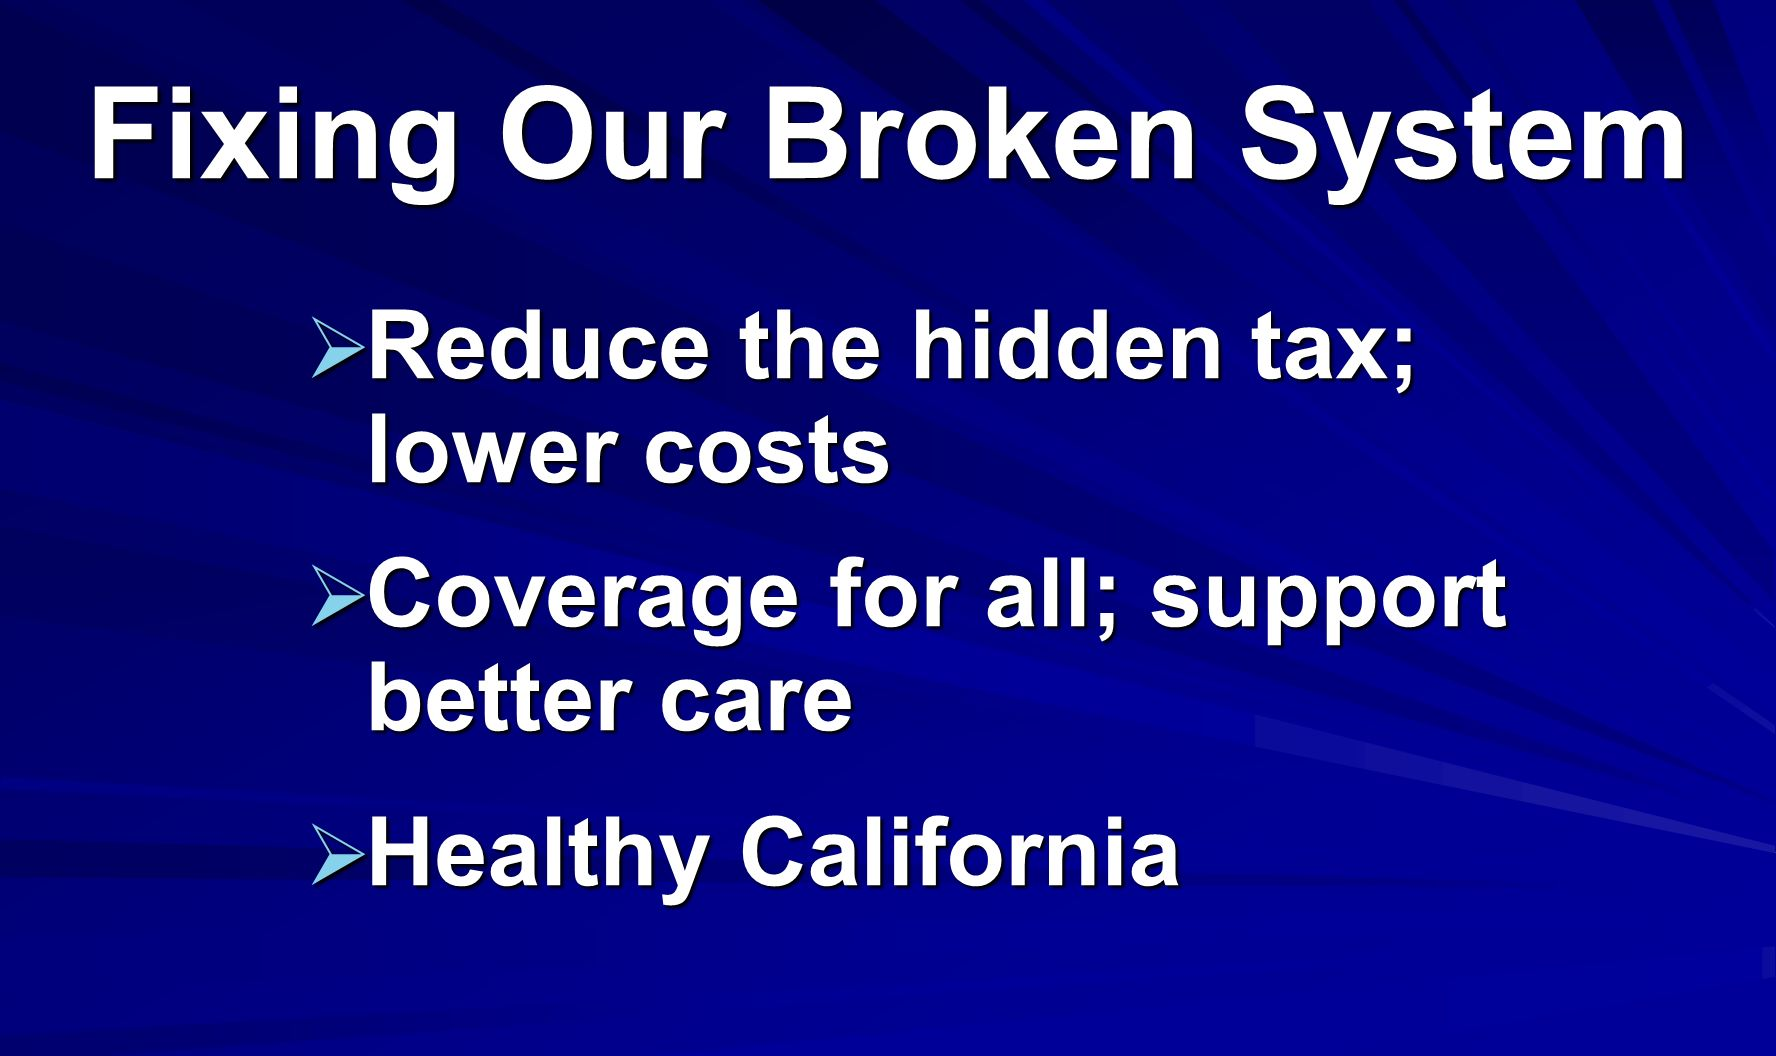 Fixing Our Broken System Reduce the hidden tax; lower costs Reduce the hidden tax; lower costs Coverage for all; support better care Coverage for all; support better care Healthy California Healthy California